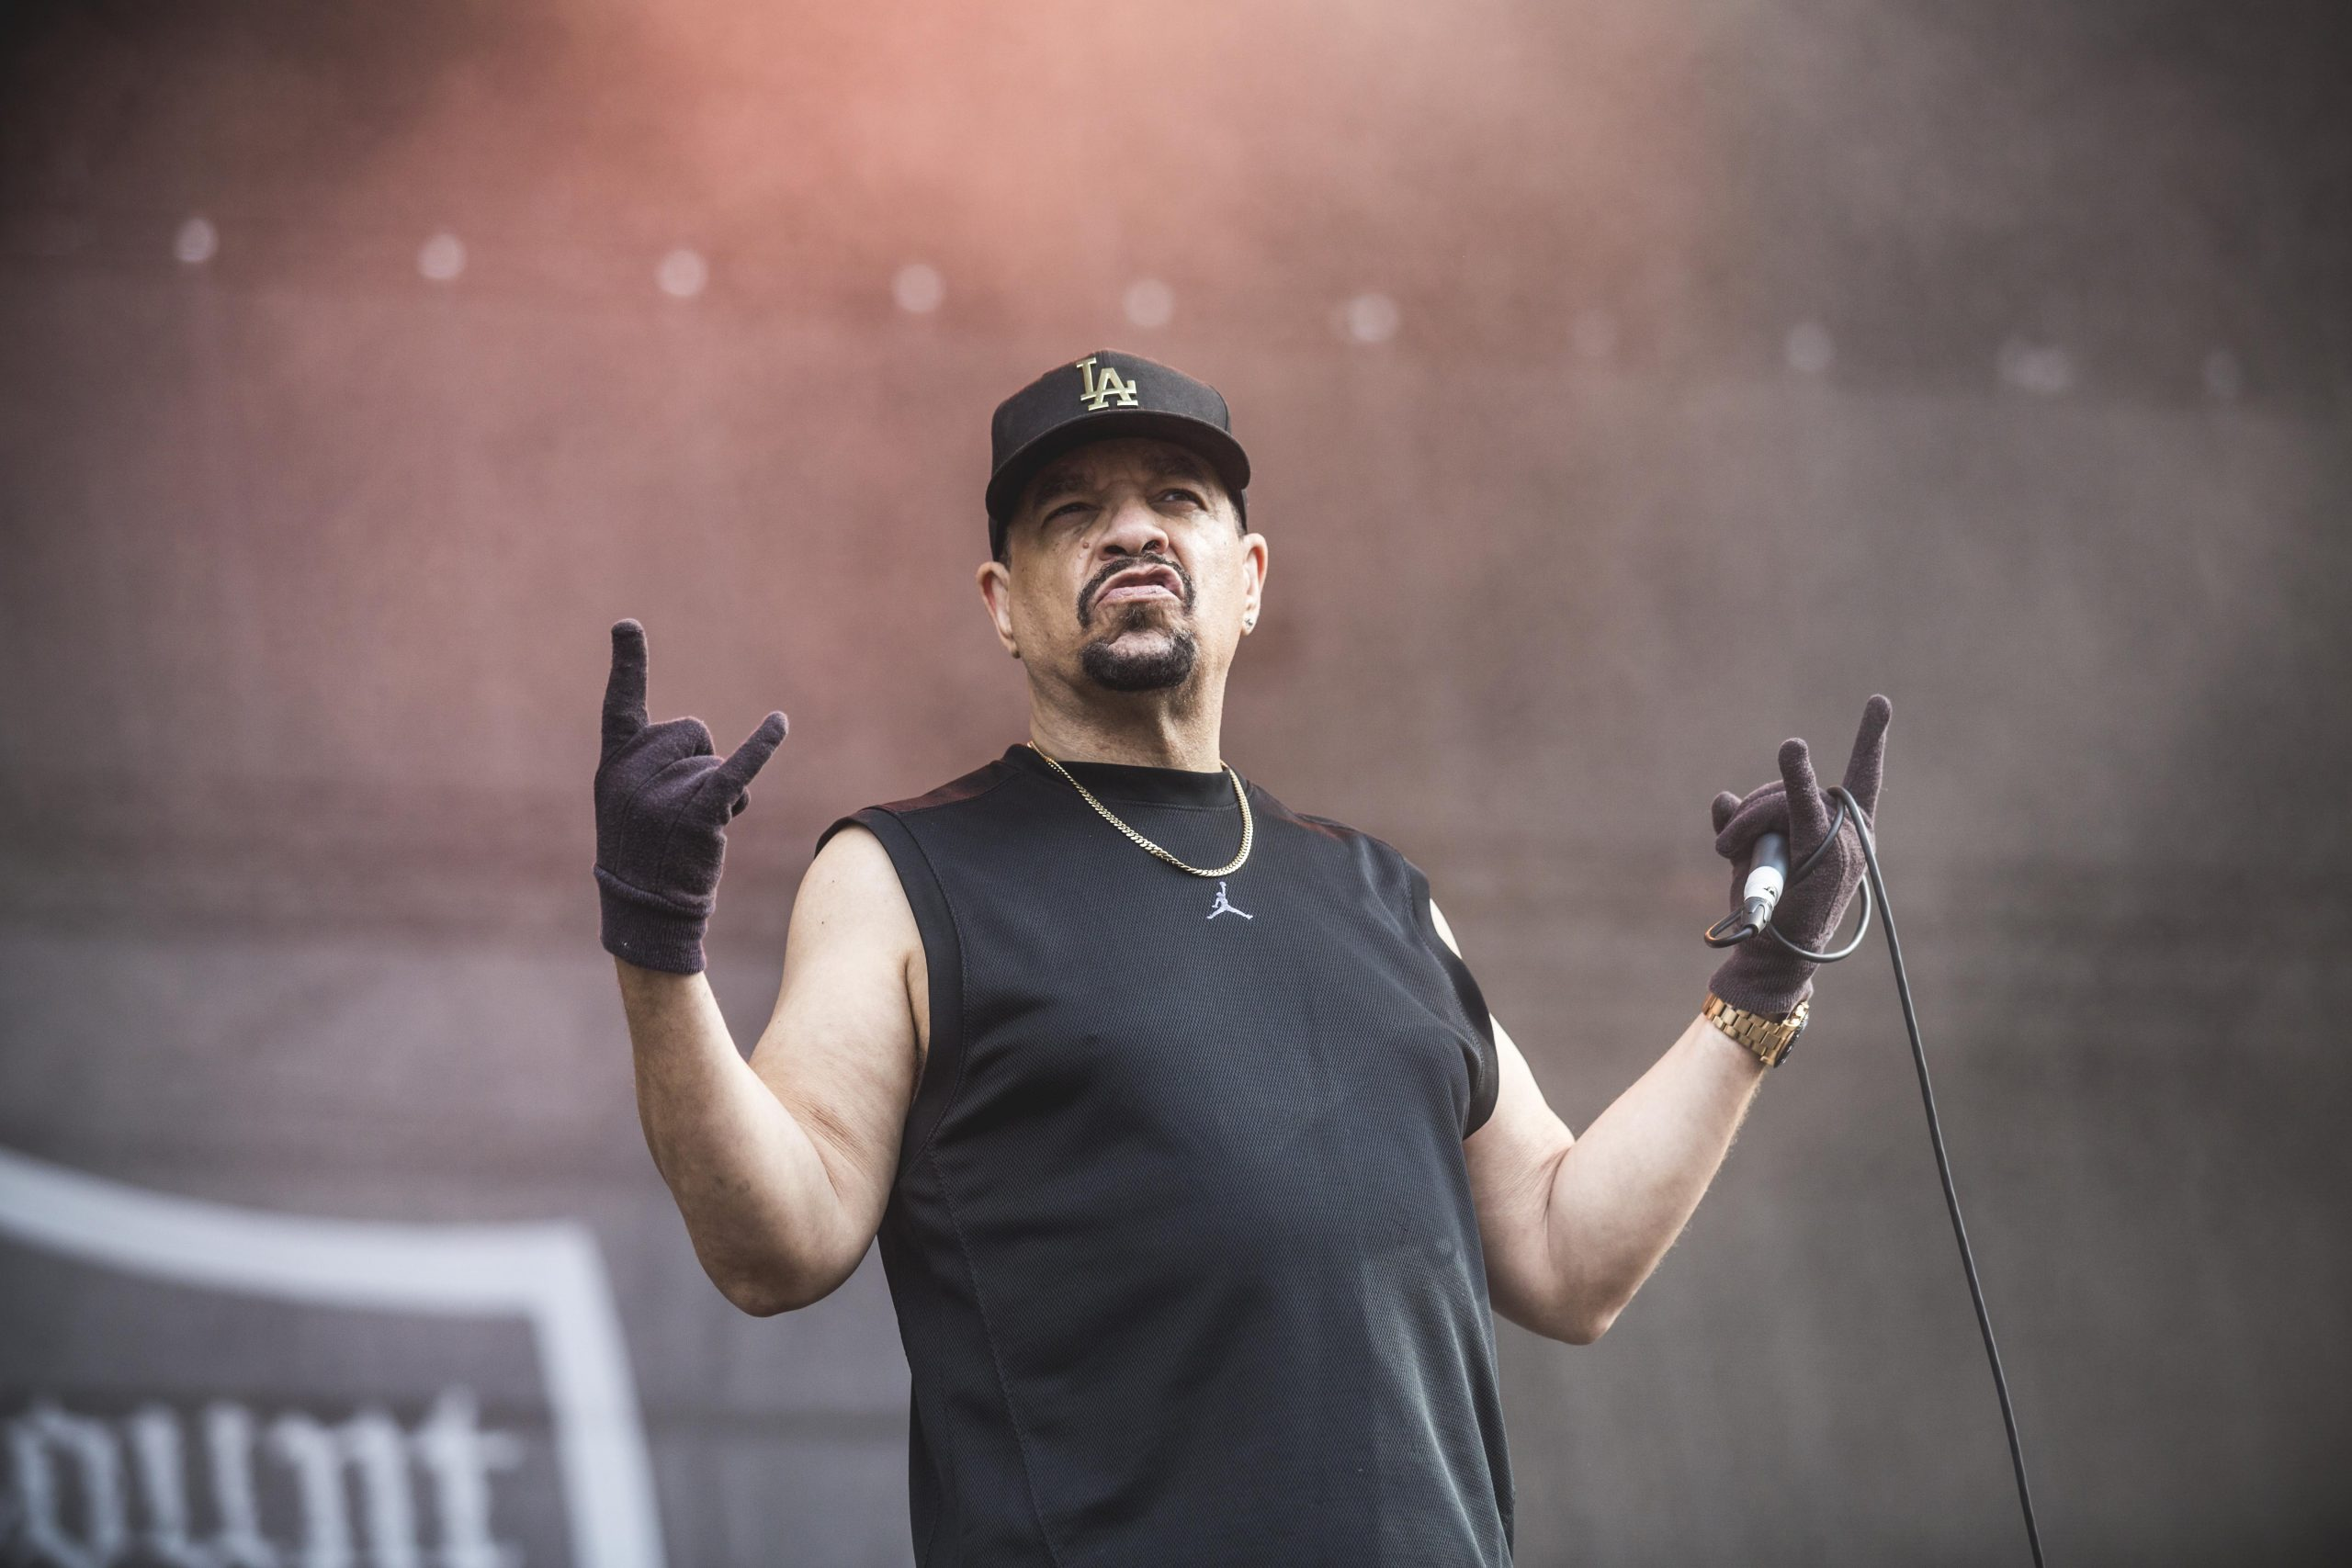 We've Got A File On You: Ice-T